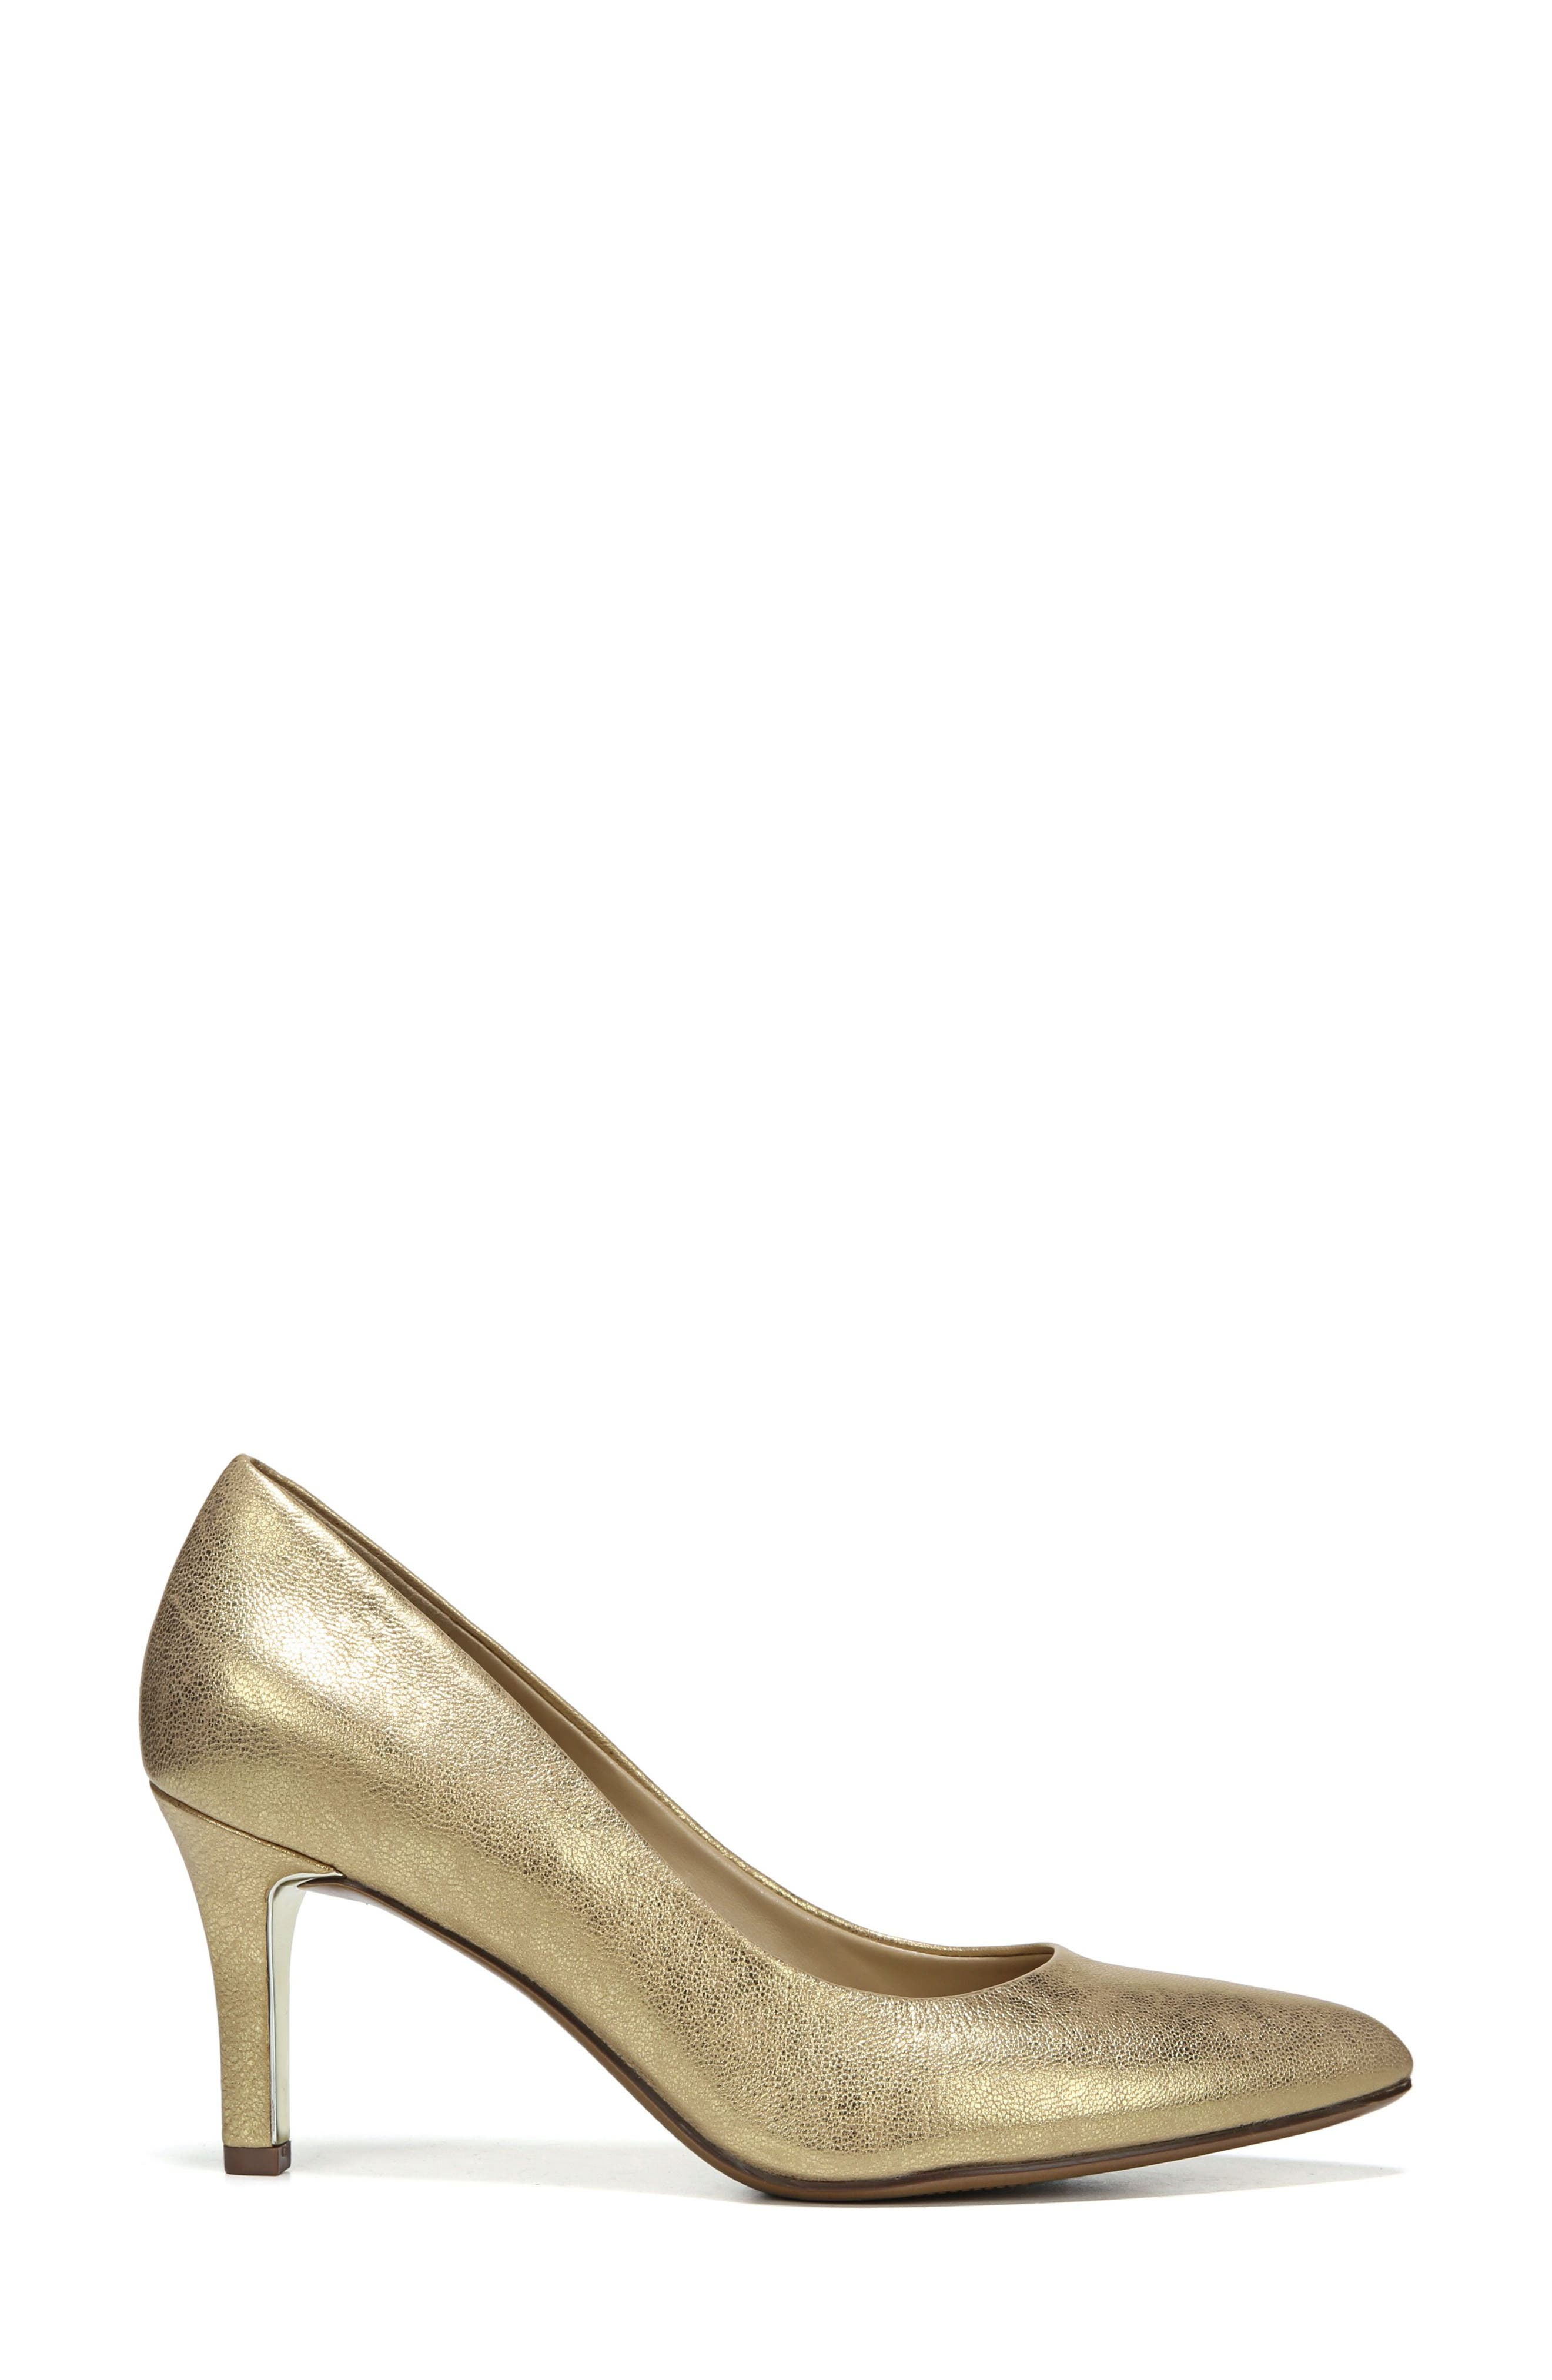 Natalie Pointy Toe Pump,                             Alternate thumbnail 3, color,                             GOLD LEATHER